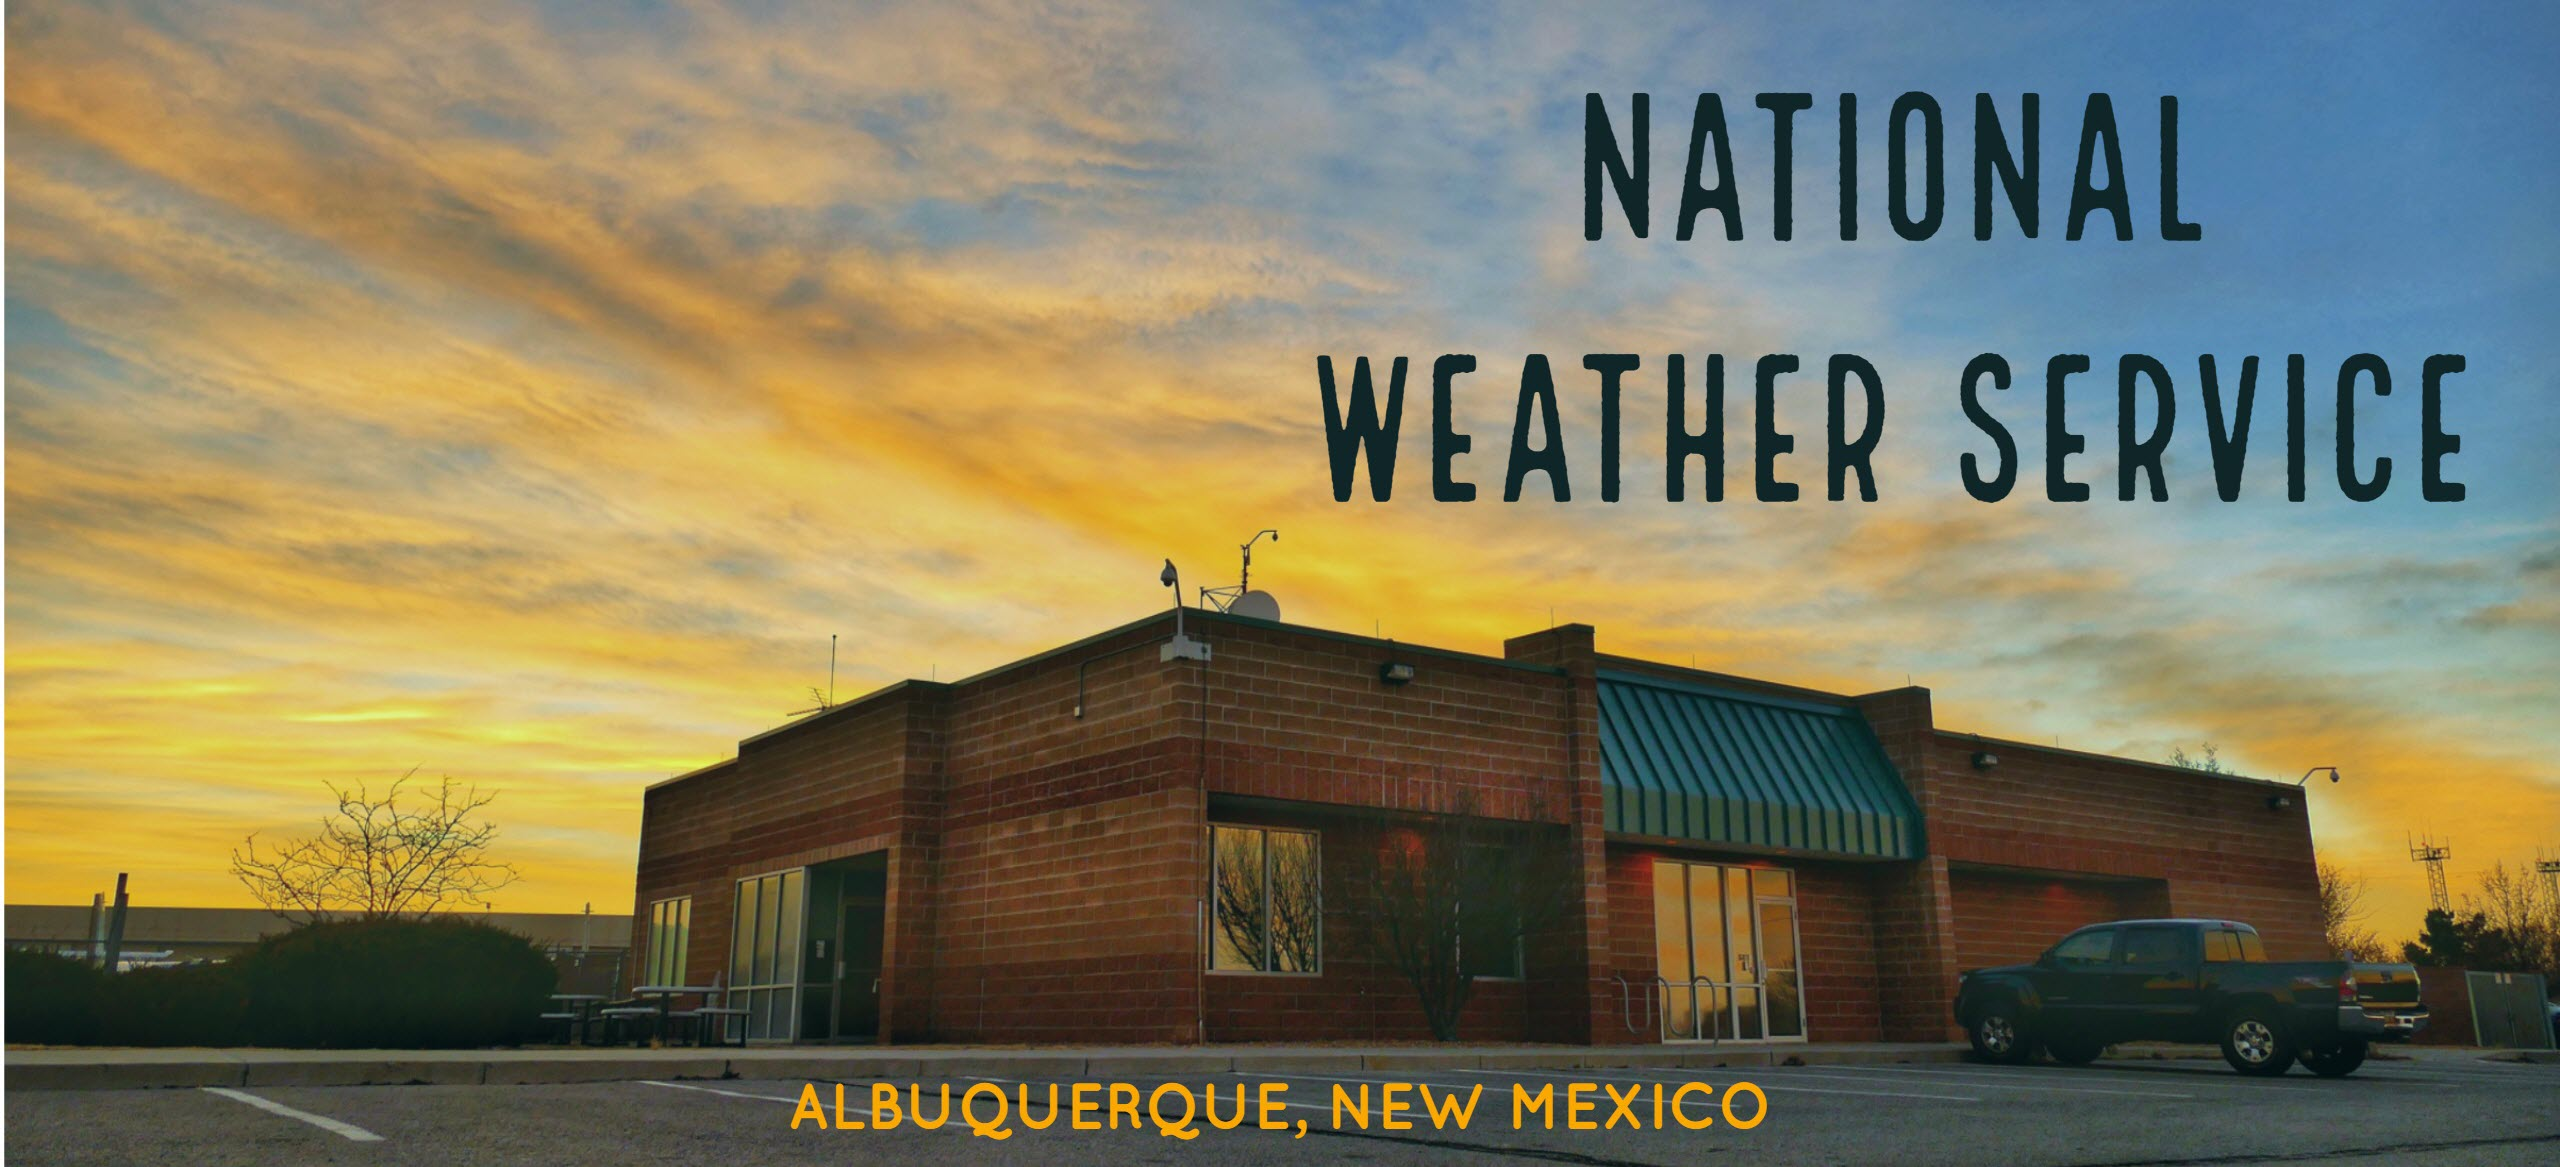 Weather Forecast Office in Albuquerque, New Mexico